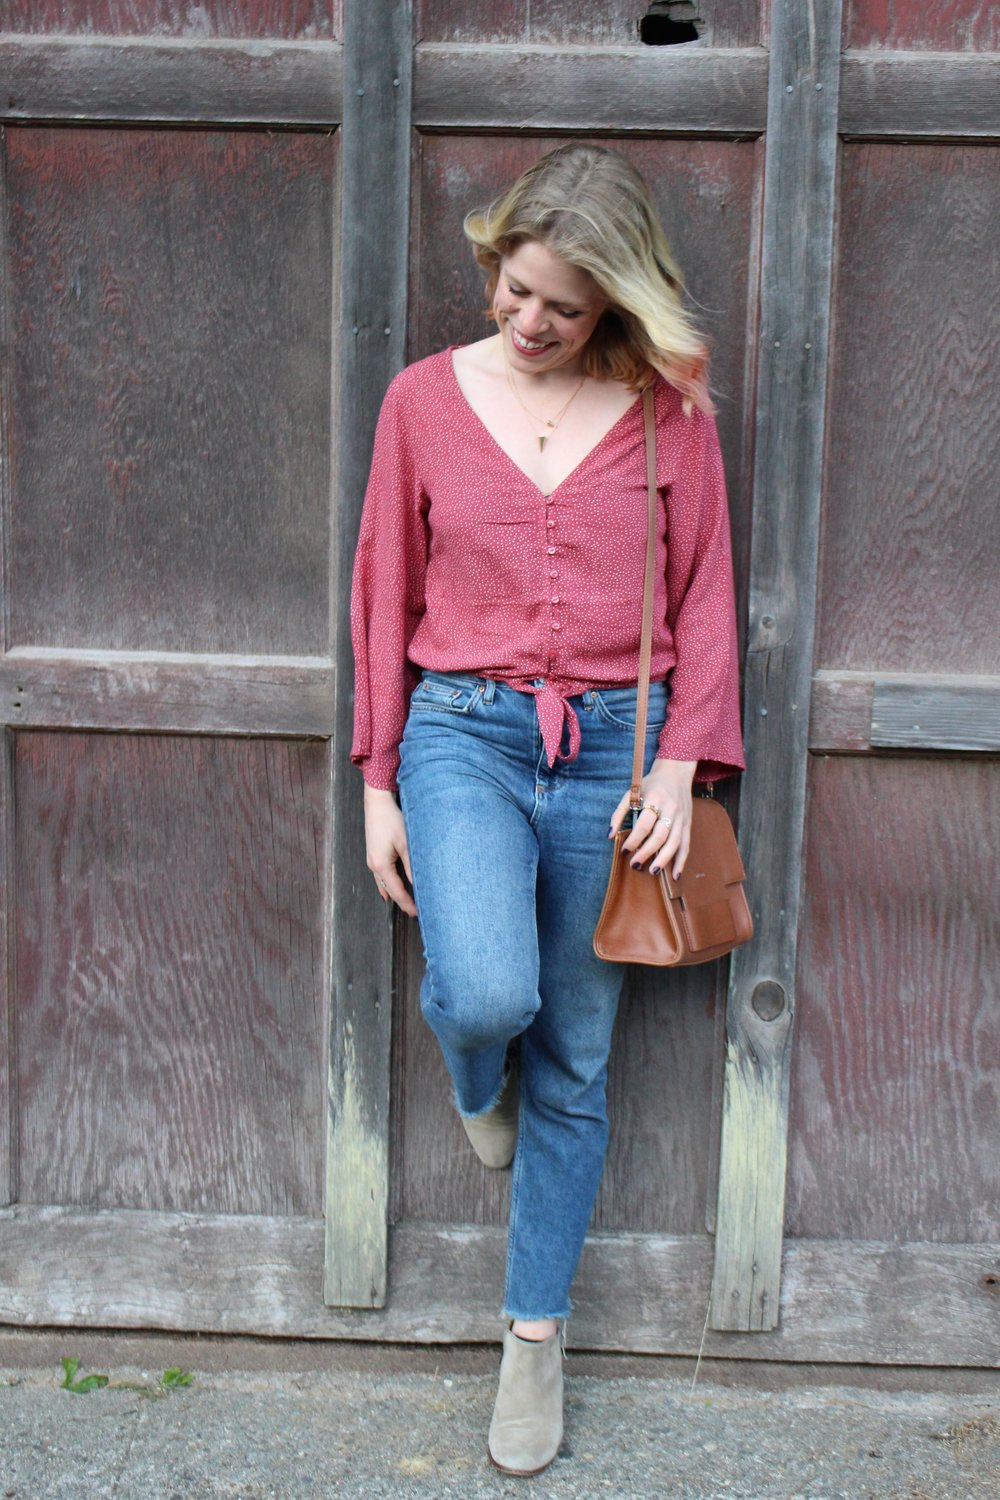 American Eagle    Blouse,    Topshop    Jeans,    Sam Edelman    Booties,    Matt & Nat    Purse,    Kate Spade New York    Necklace